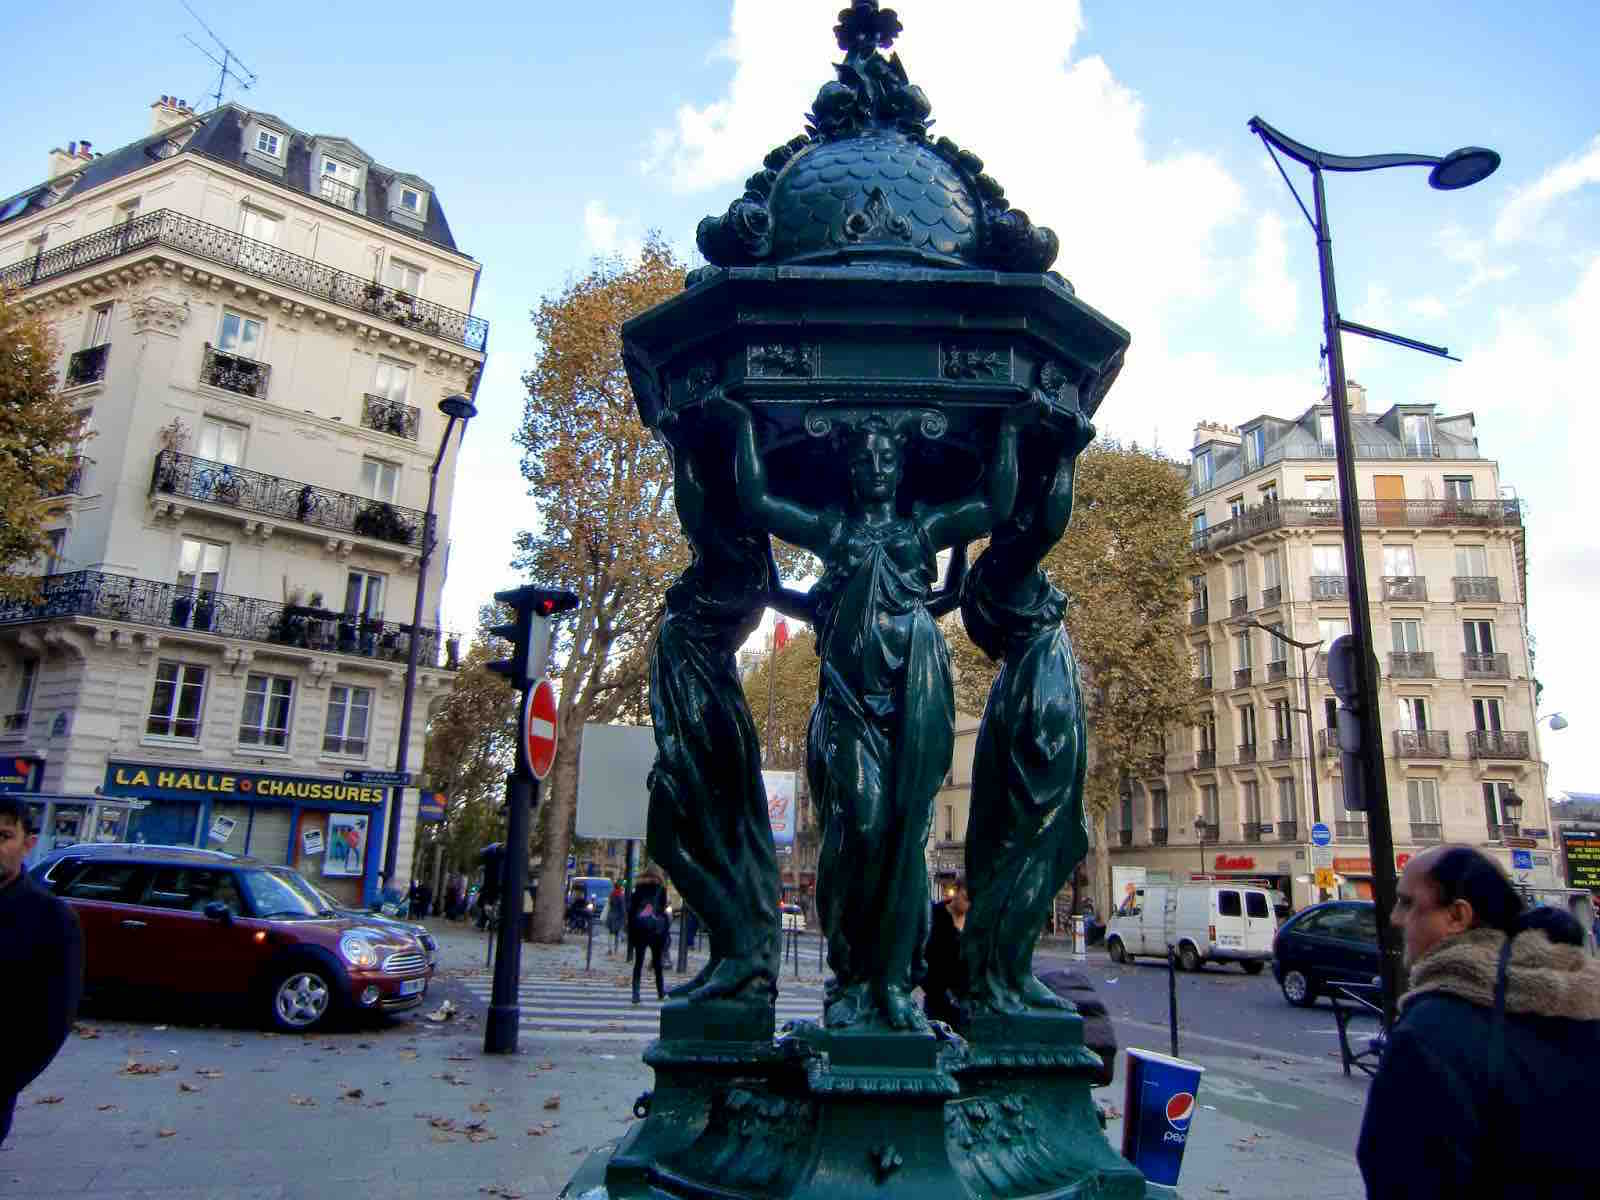 tour, local, hidden, secret, attractions, Paris, unusual, special, tourist, tourism